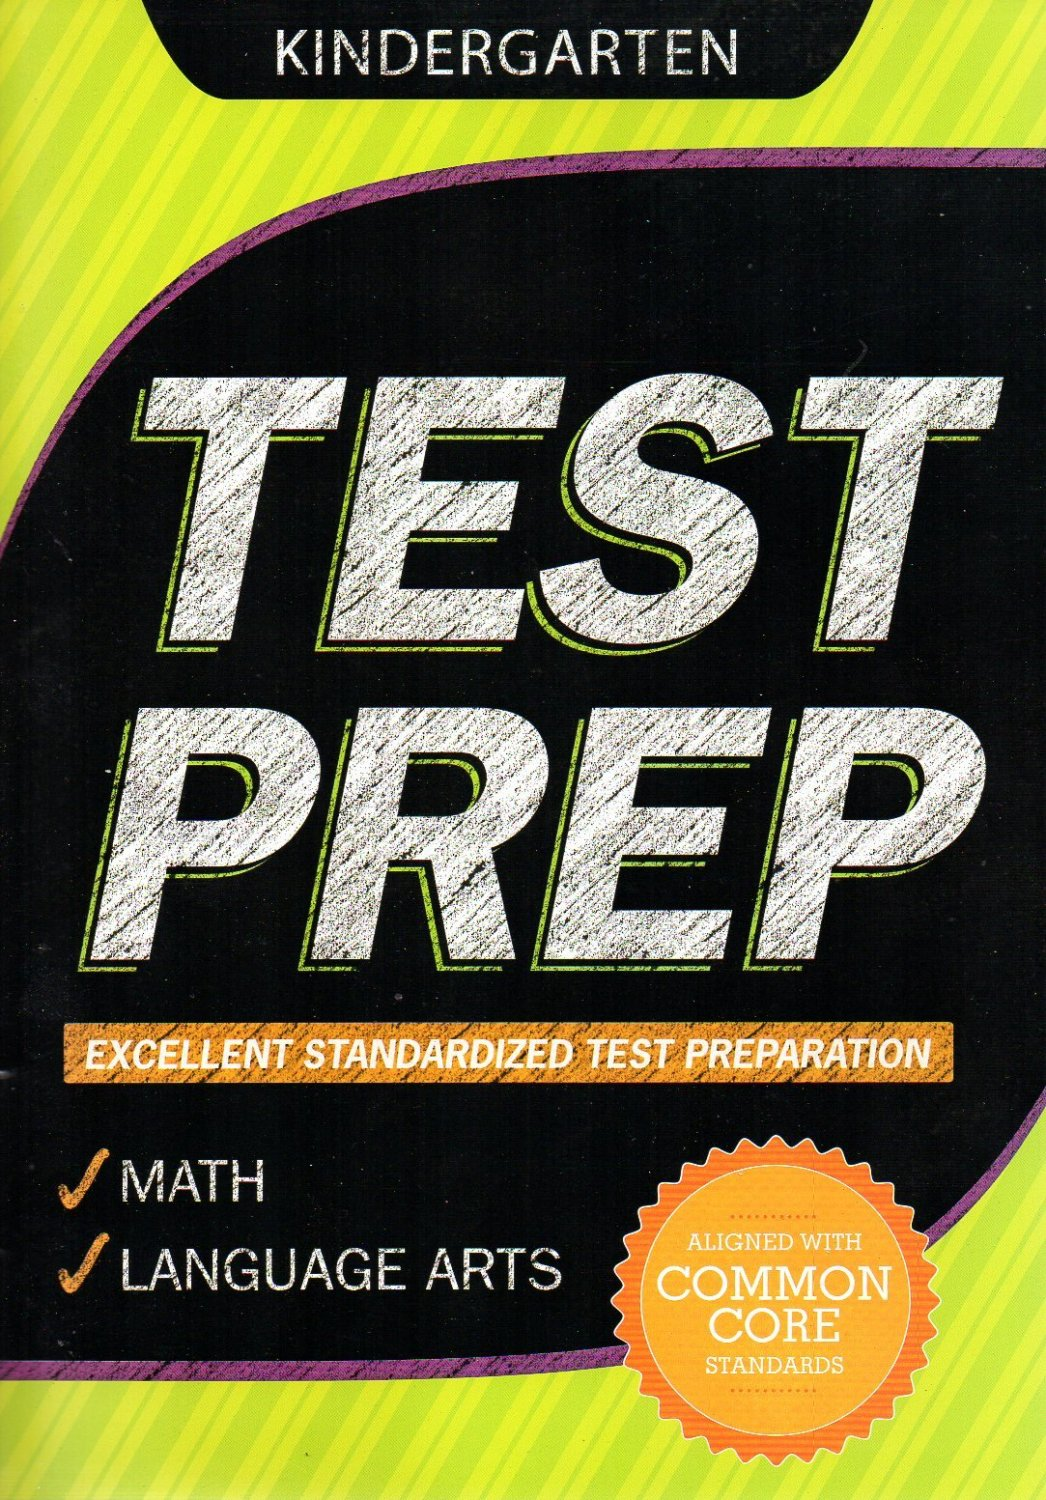 Kindergarten Grade Math Amp Language Arts Test Prep Workbook Aligned With Common Core Standards